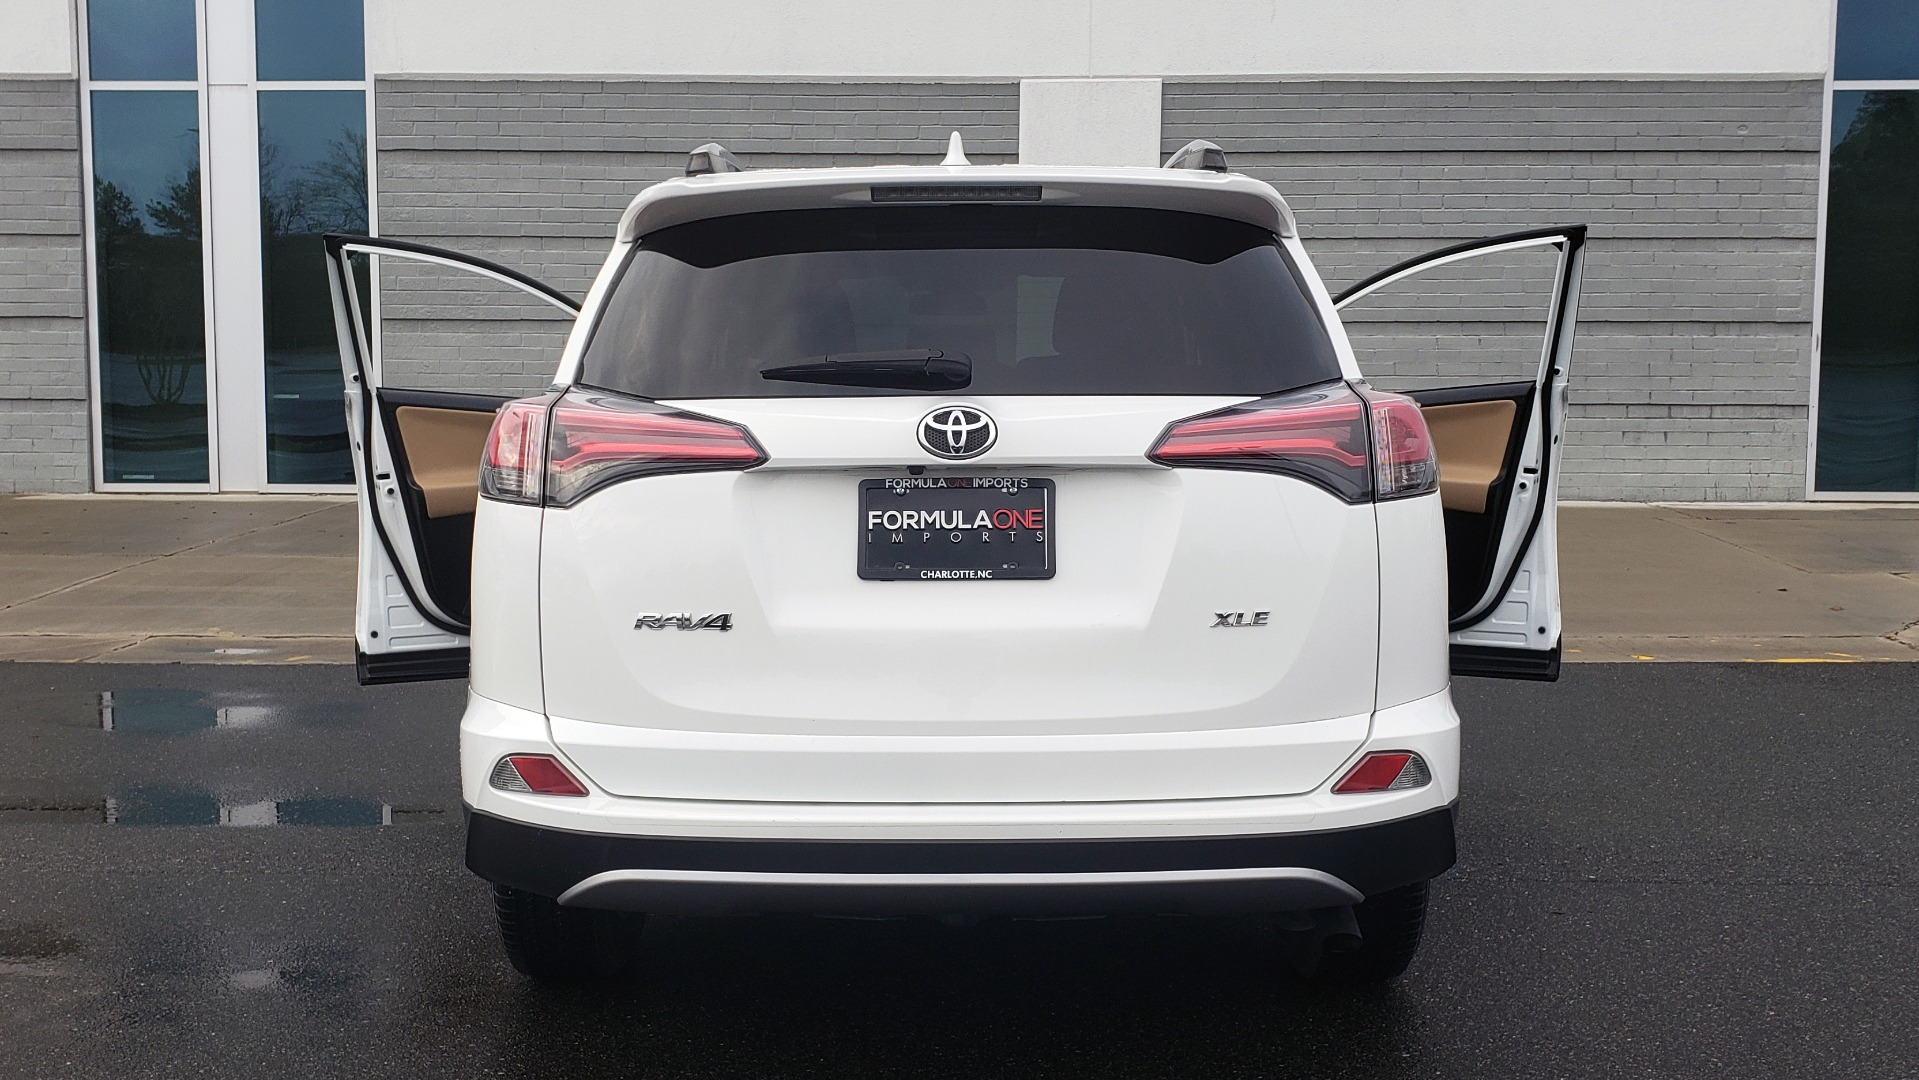 Used 2018 Toyota RAV4 XLE / FWD / 4-CYL / 6-SPD AUTO / BSM / REAR CROSS TRAFFIC ALERT for sale Sold at Formula Imports in Charlotte NC 28227 26